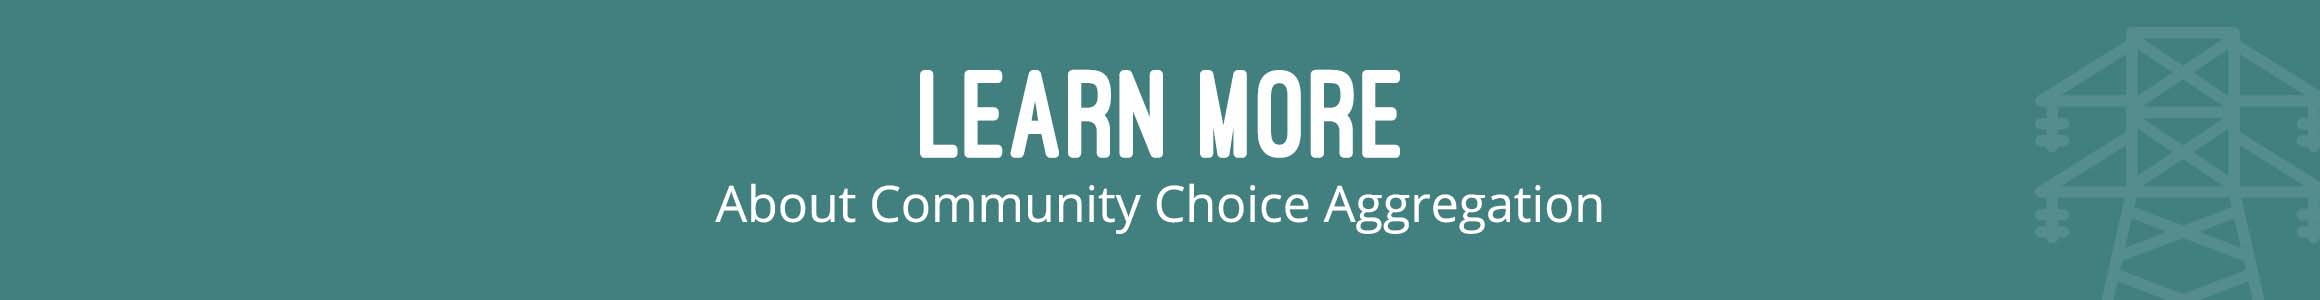 Learn More about Community Choice Aggregation